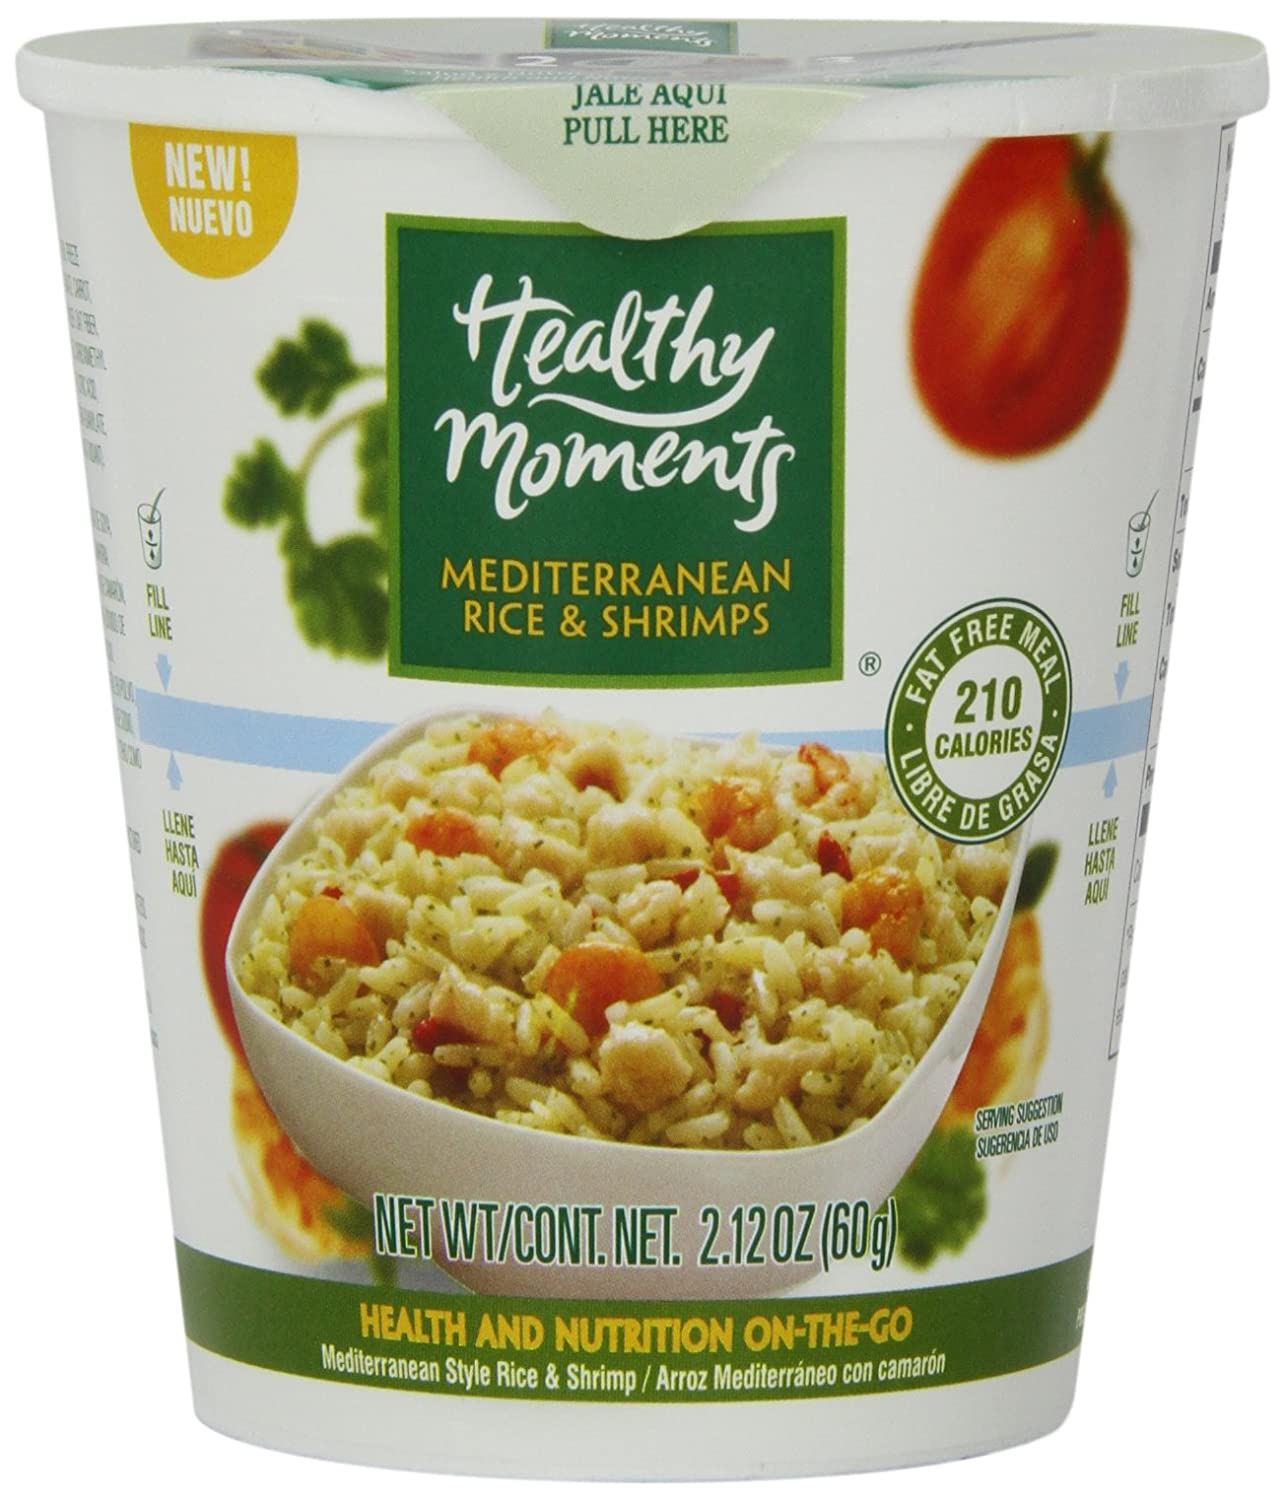 Amazon.com : Healthy Moments Mediterranean Rice and Shrimps, 2.12 Ounce (Pack of 12) : Grocery & Gourmet Food